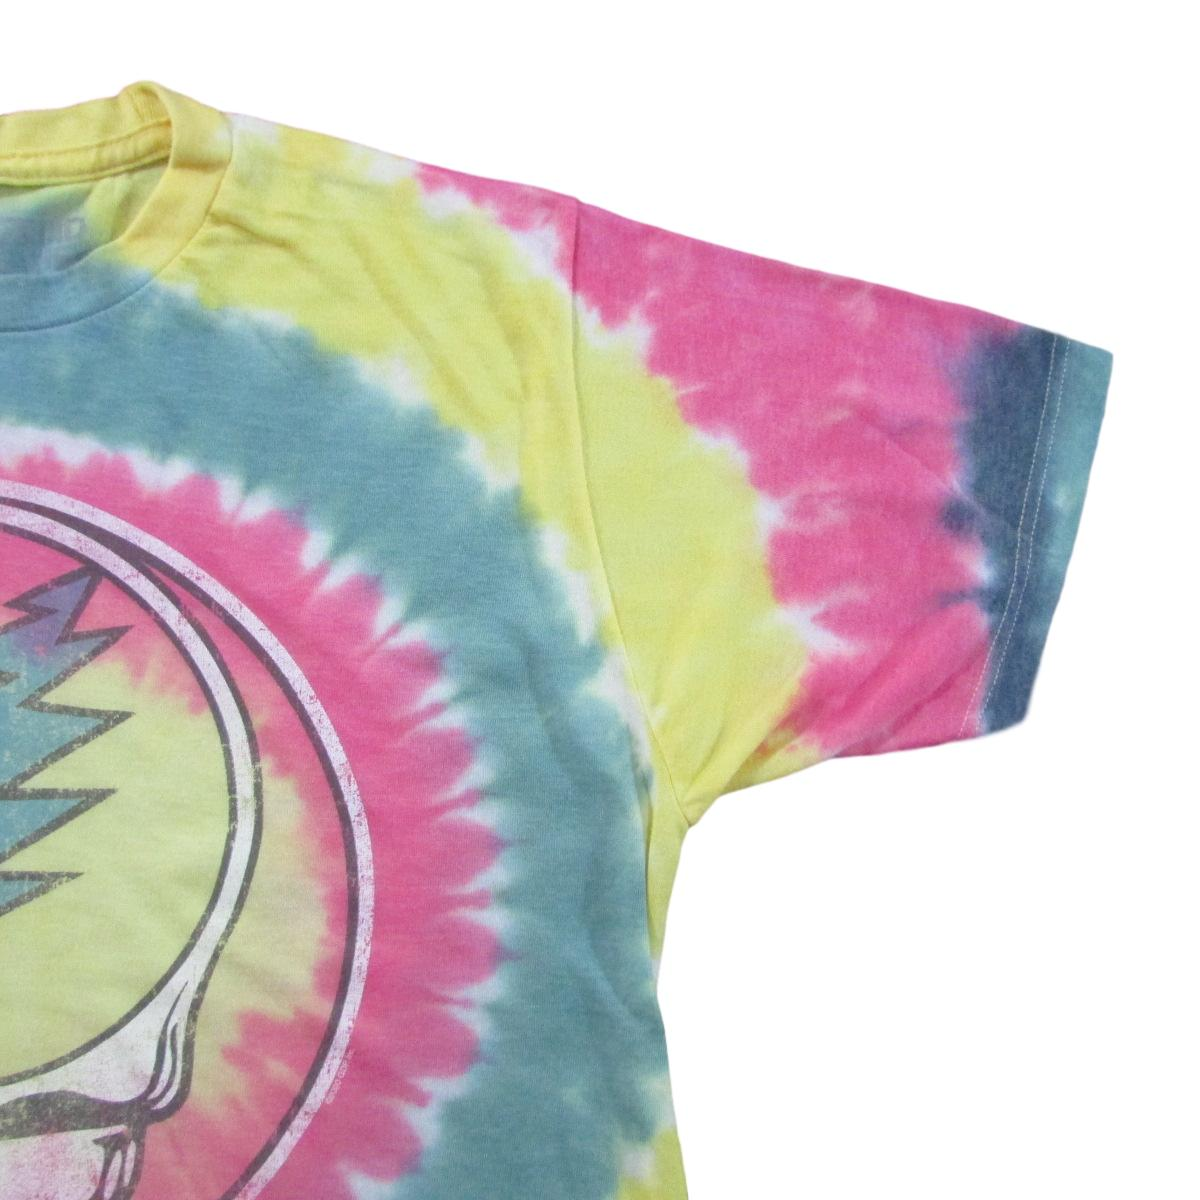 Grateful Dead Rasta Steal Your Face Tie Dye T-Shirt